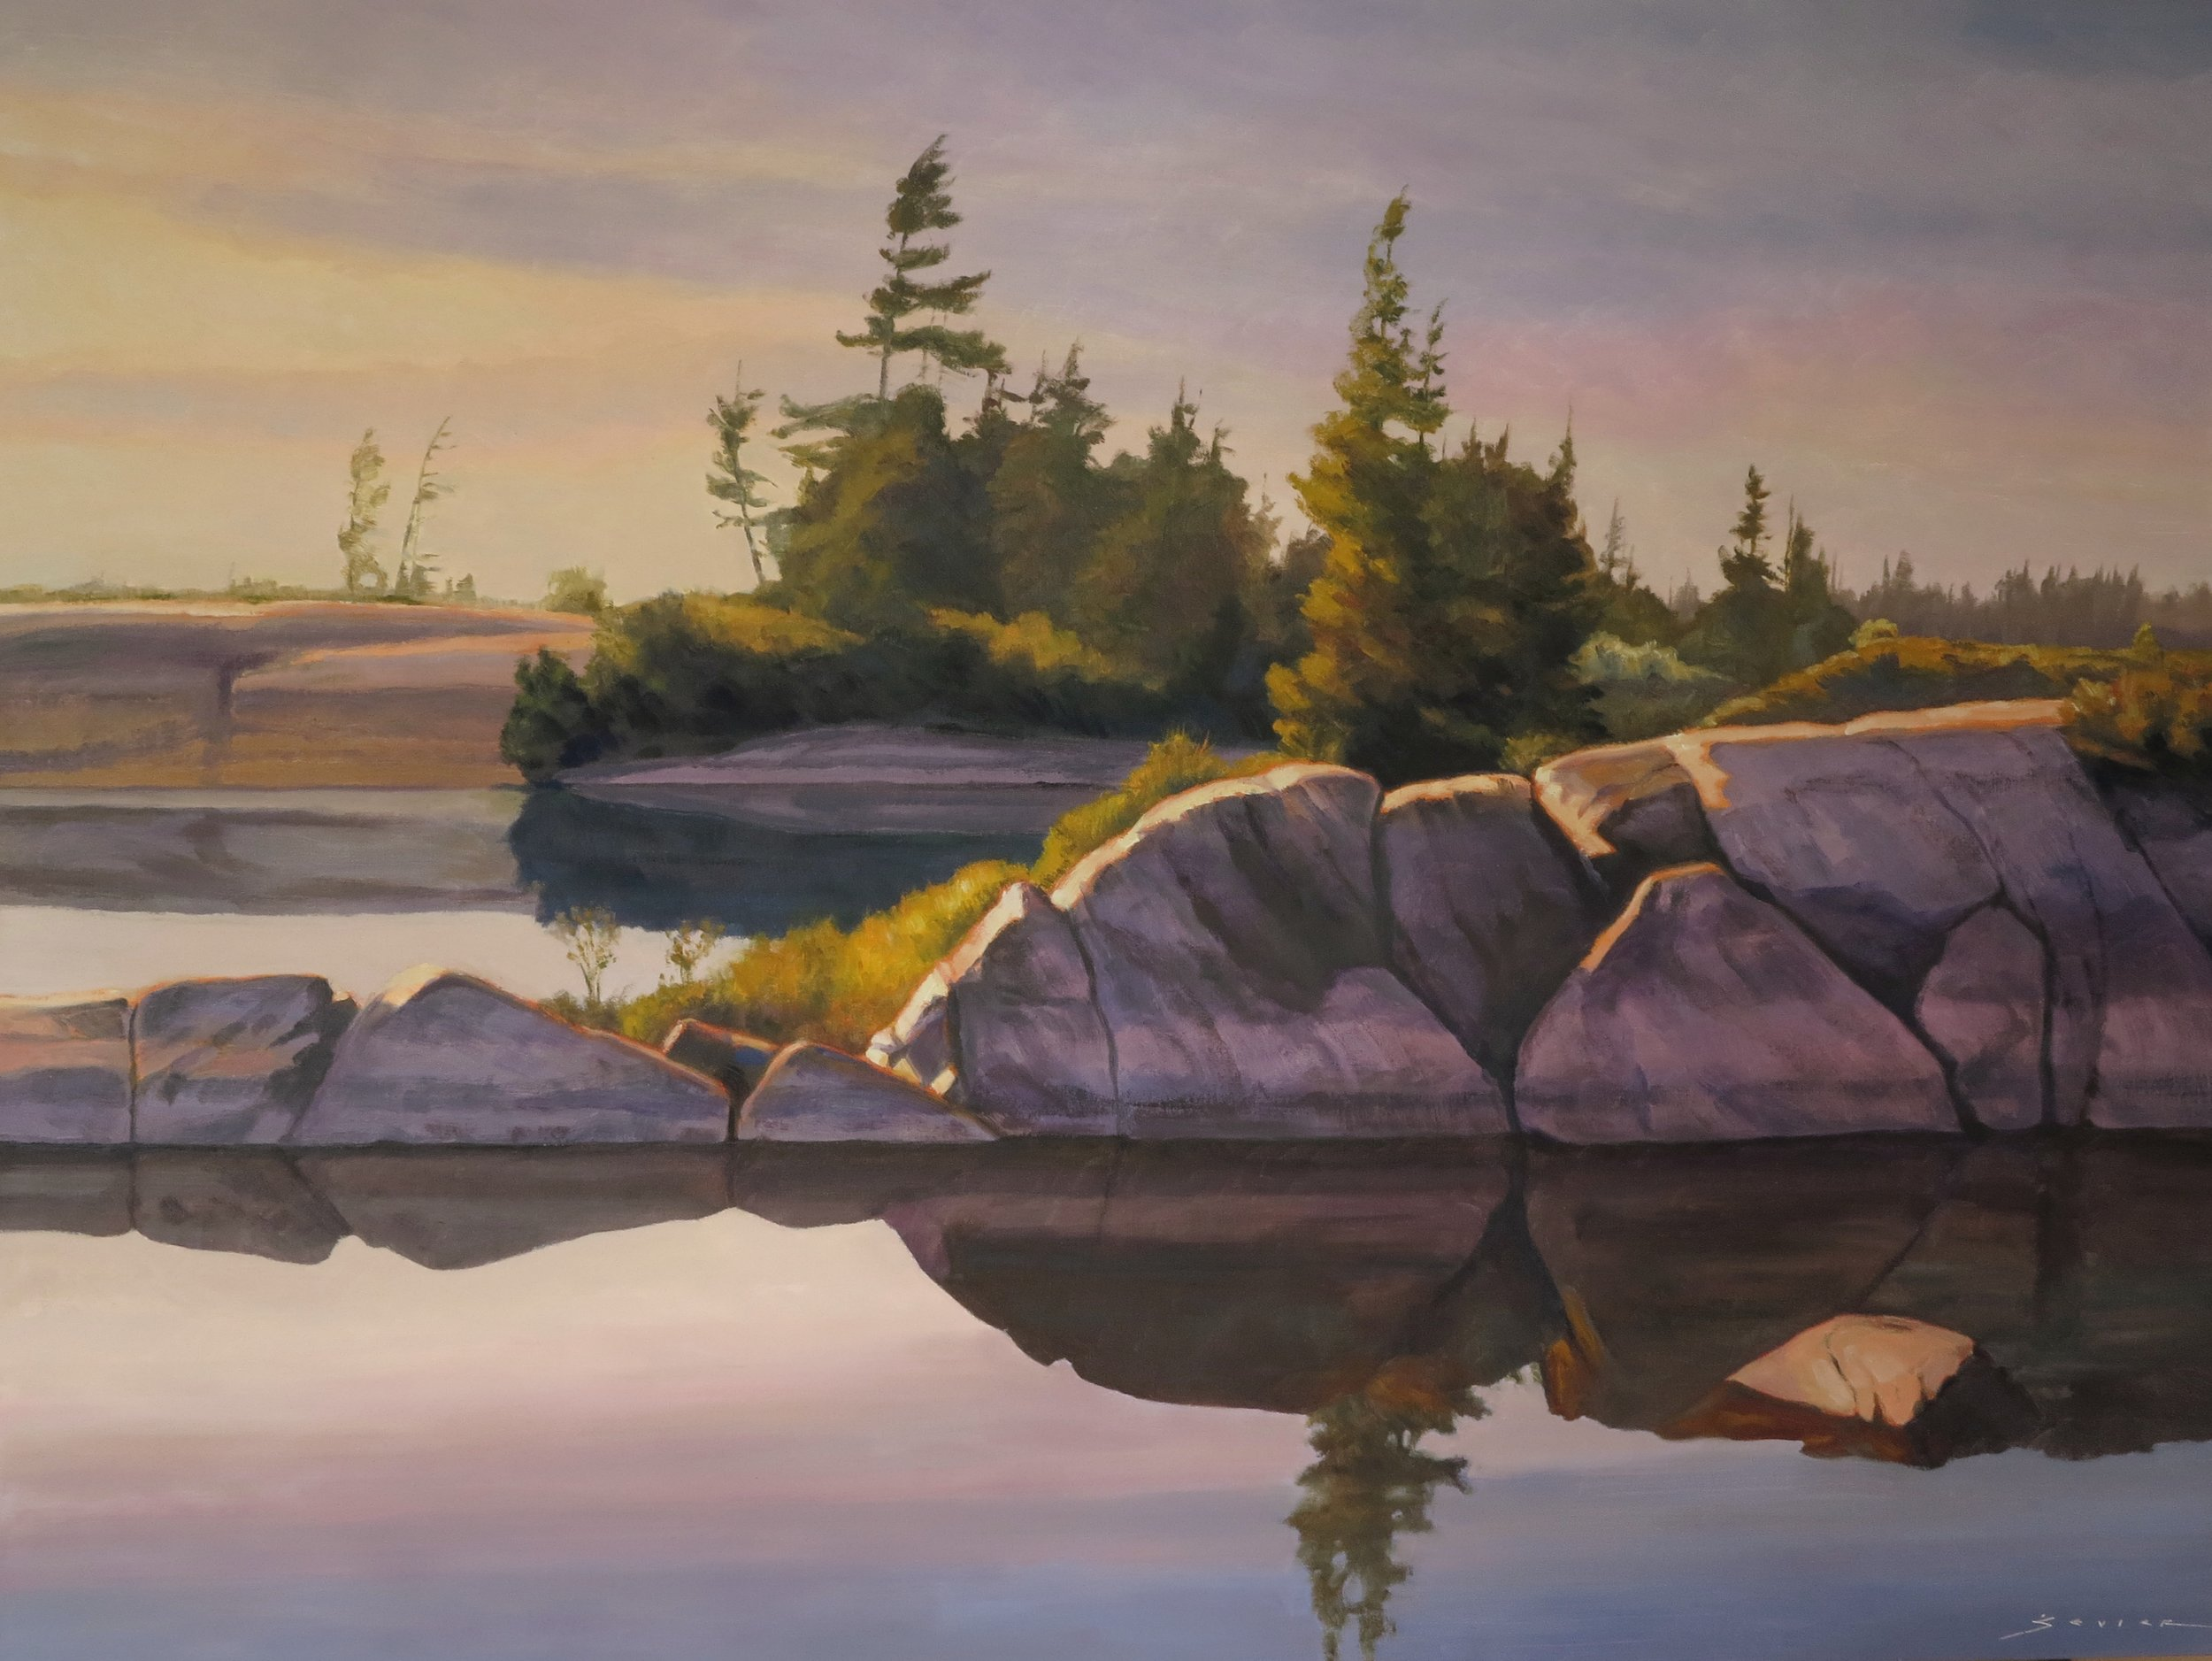 Evening Bayfield Inlet, 36 x 48, oil